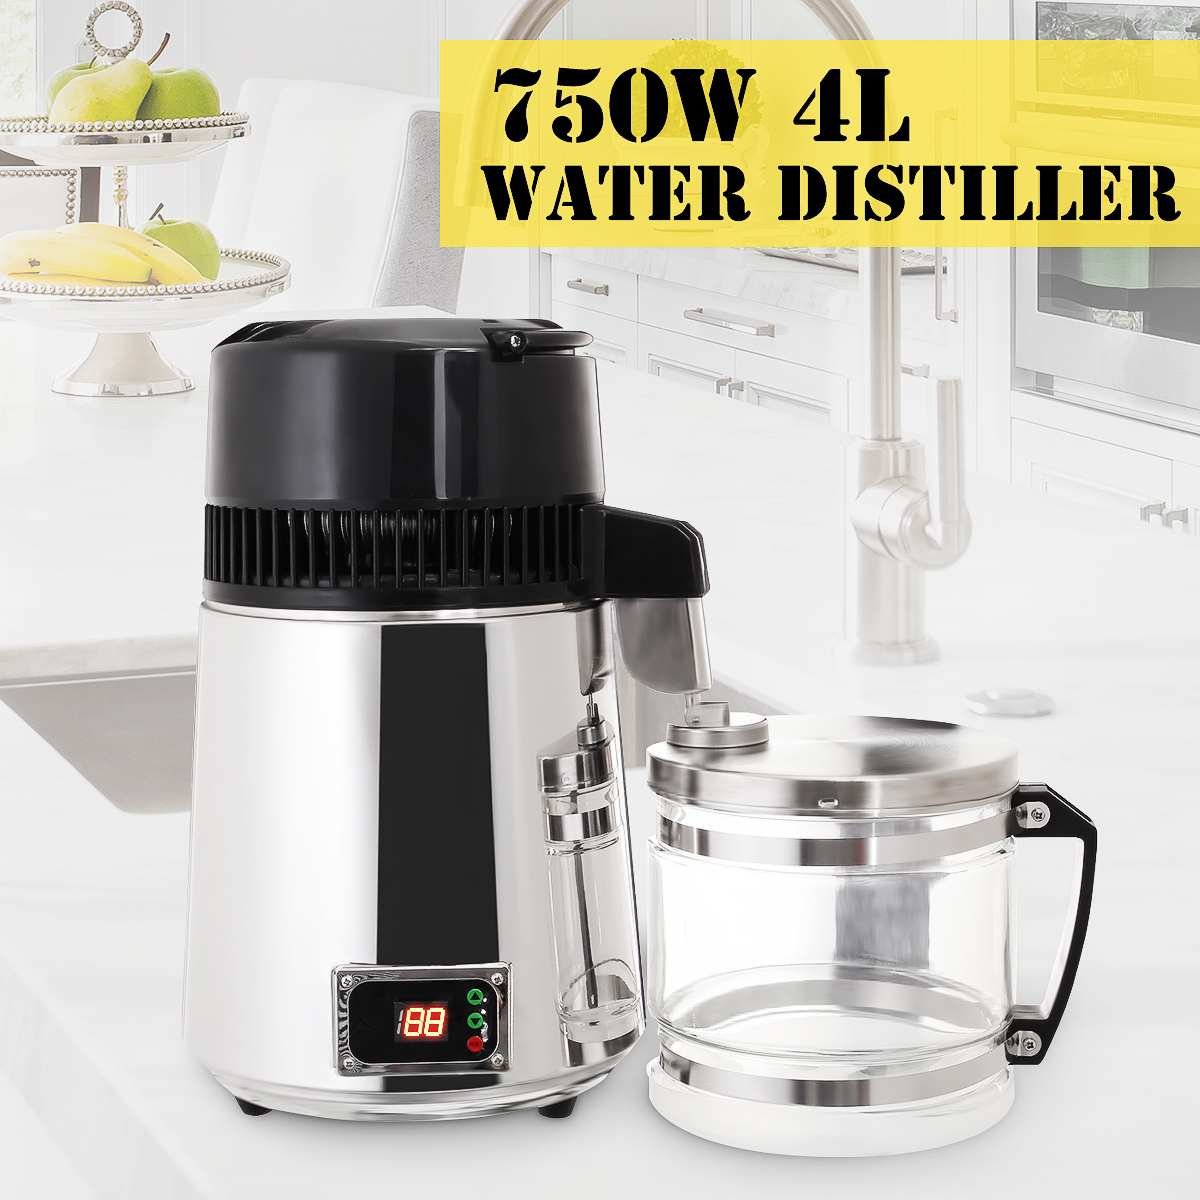 750W 4L Water Distiller Household Distilled Pure Water Machine Distillation Purifier Filter Stainless Steel Water Filter AU Plug|Pitcher Water Filters|Home & Garden - title=